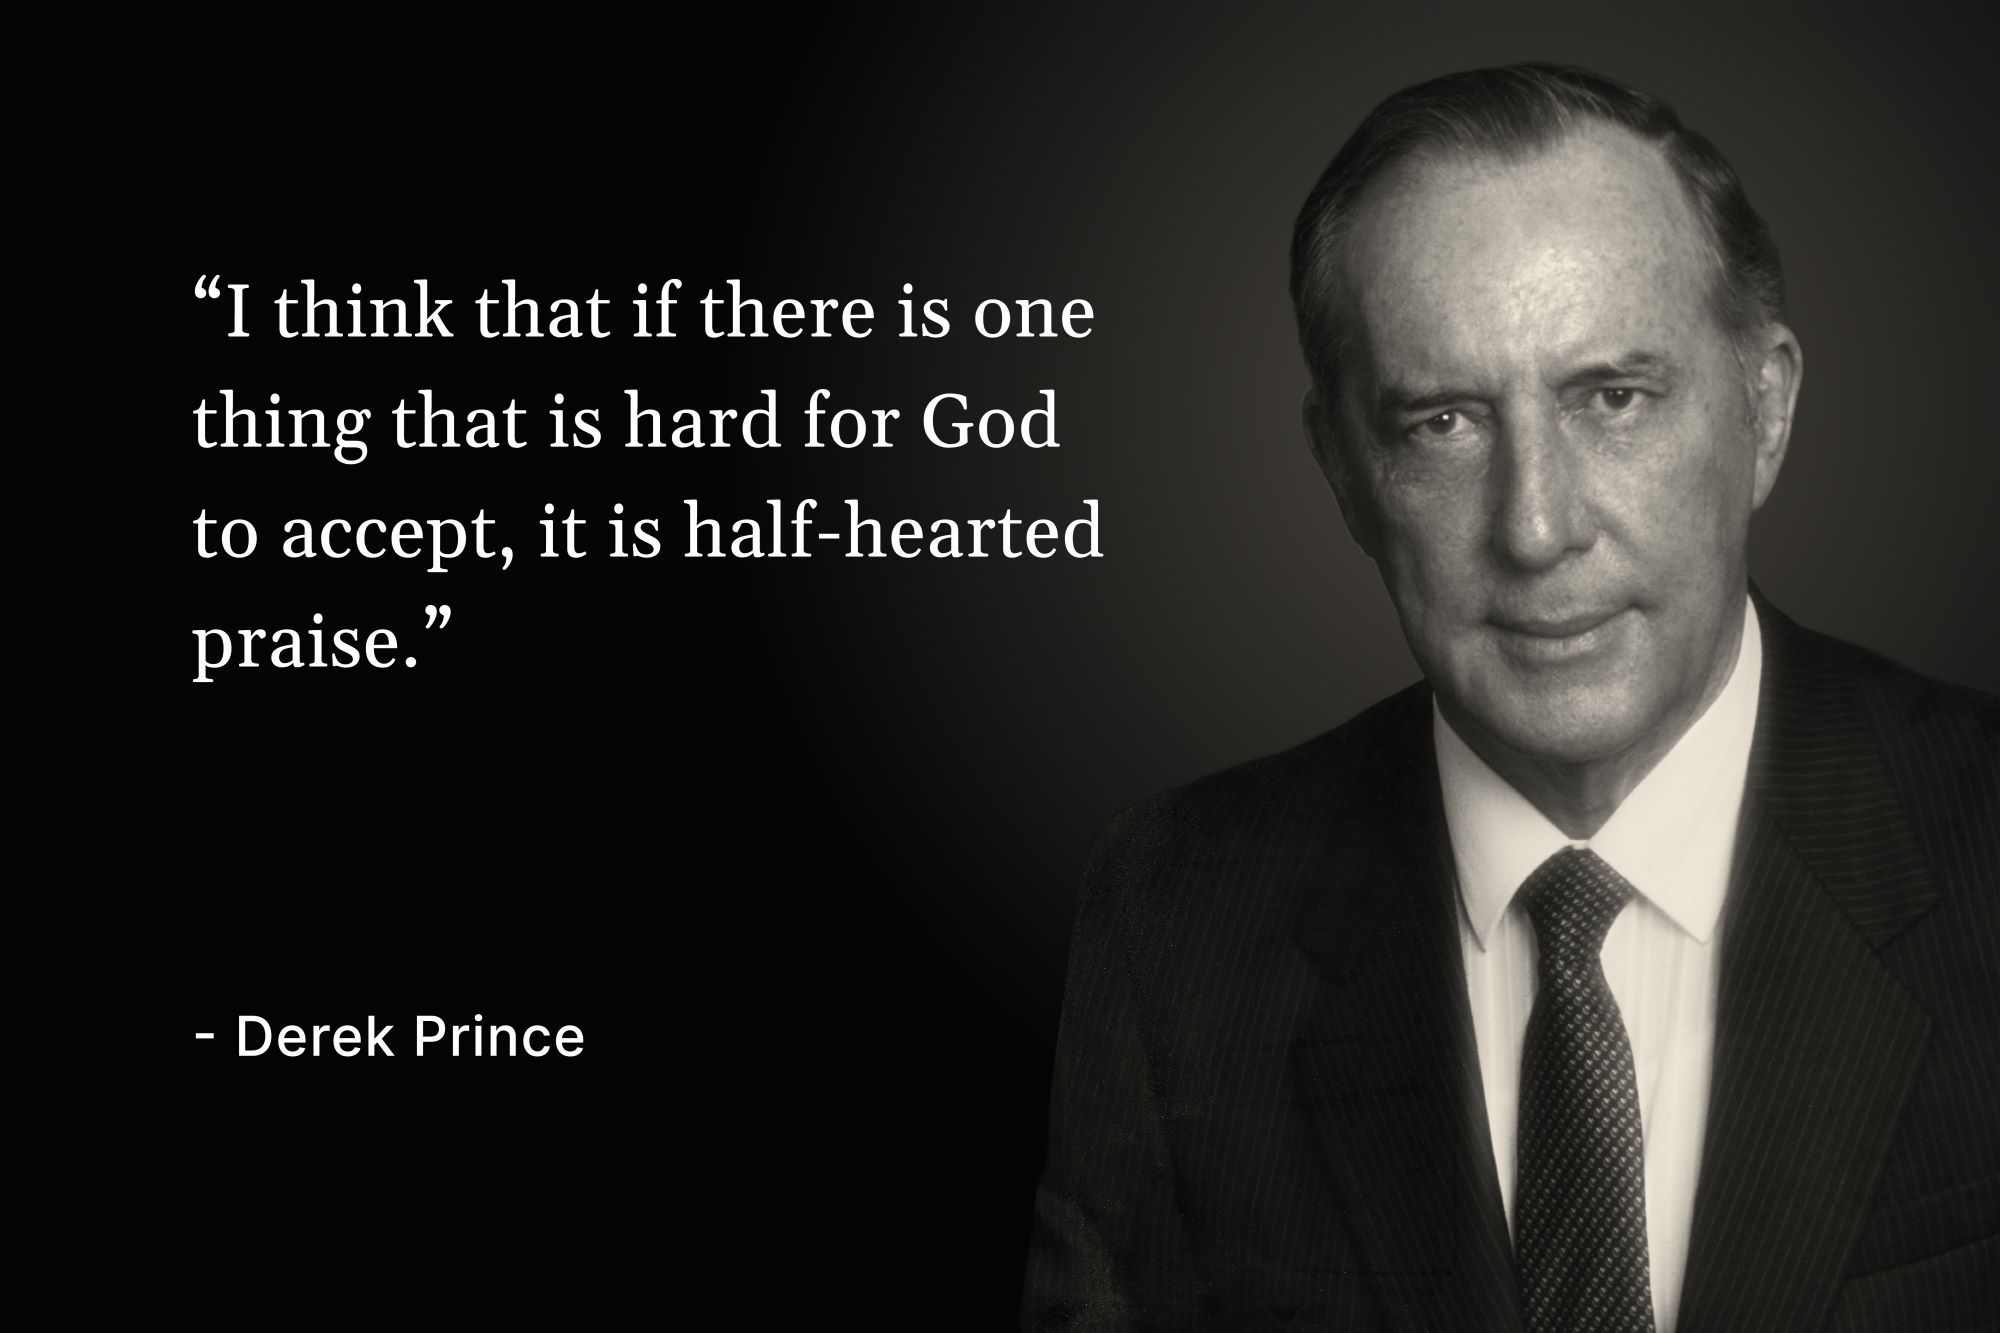 """A photo of Derek Prince with a quote that reads, """"I think that if there is one thing that is hard for God to accept, it is half-hearted praise"""""""